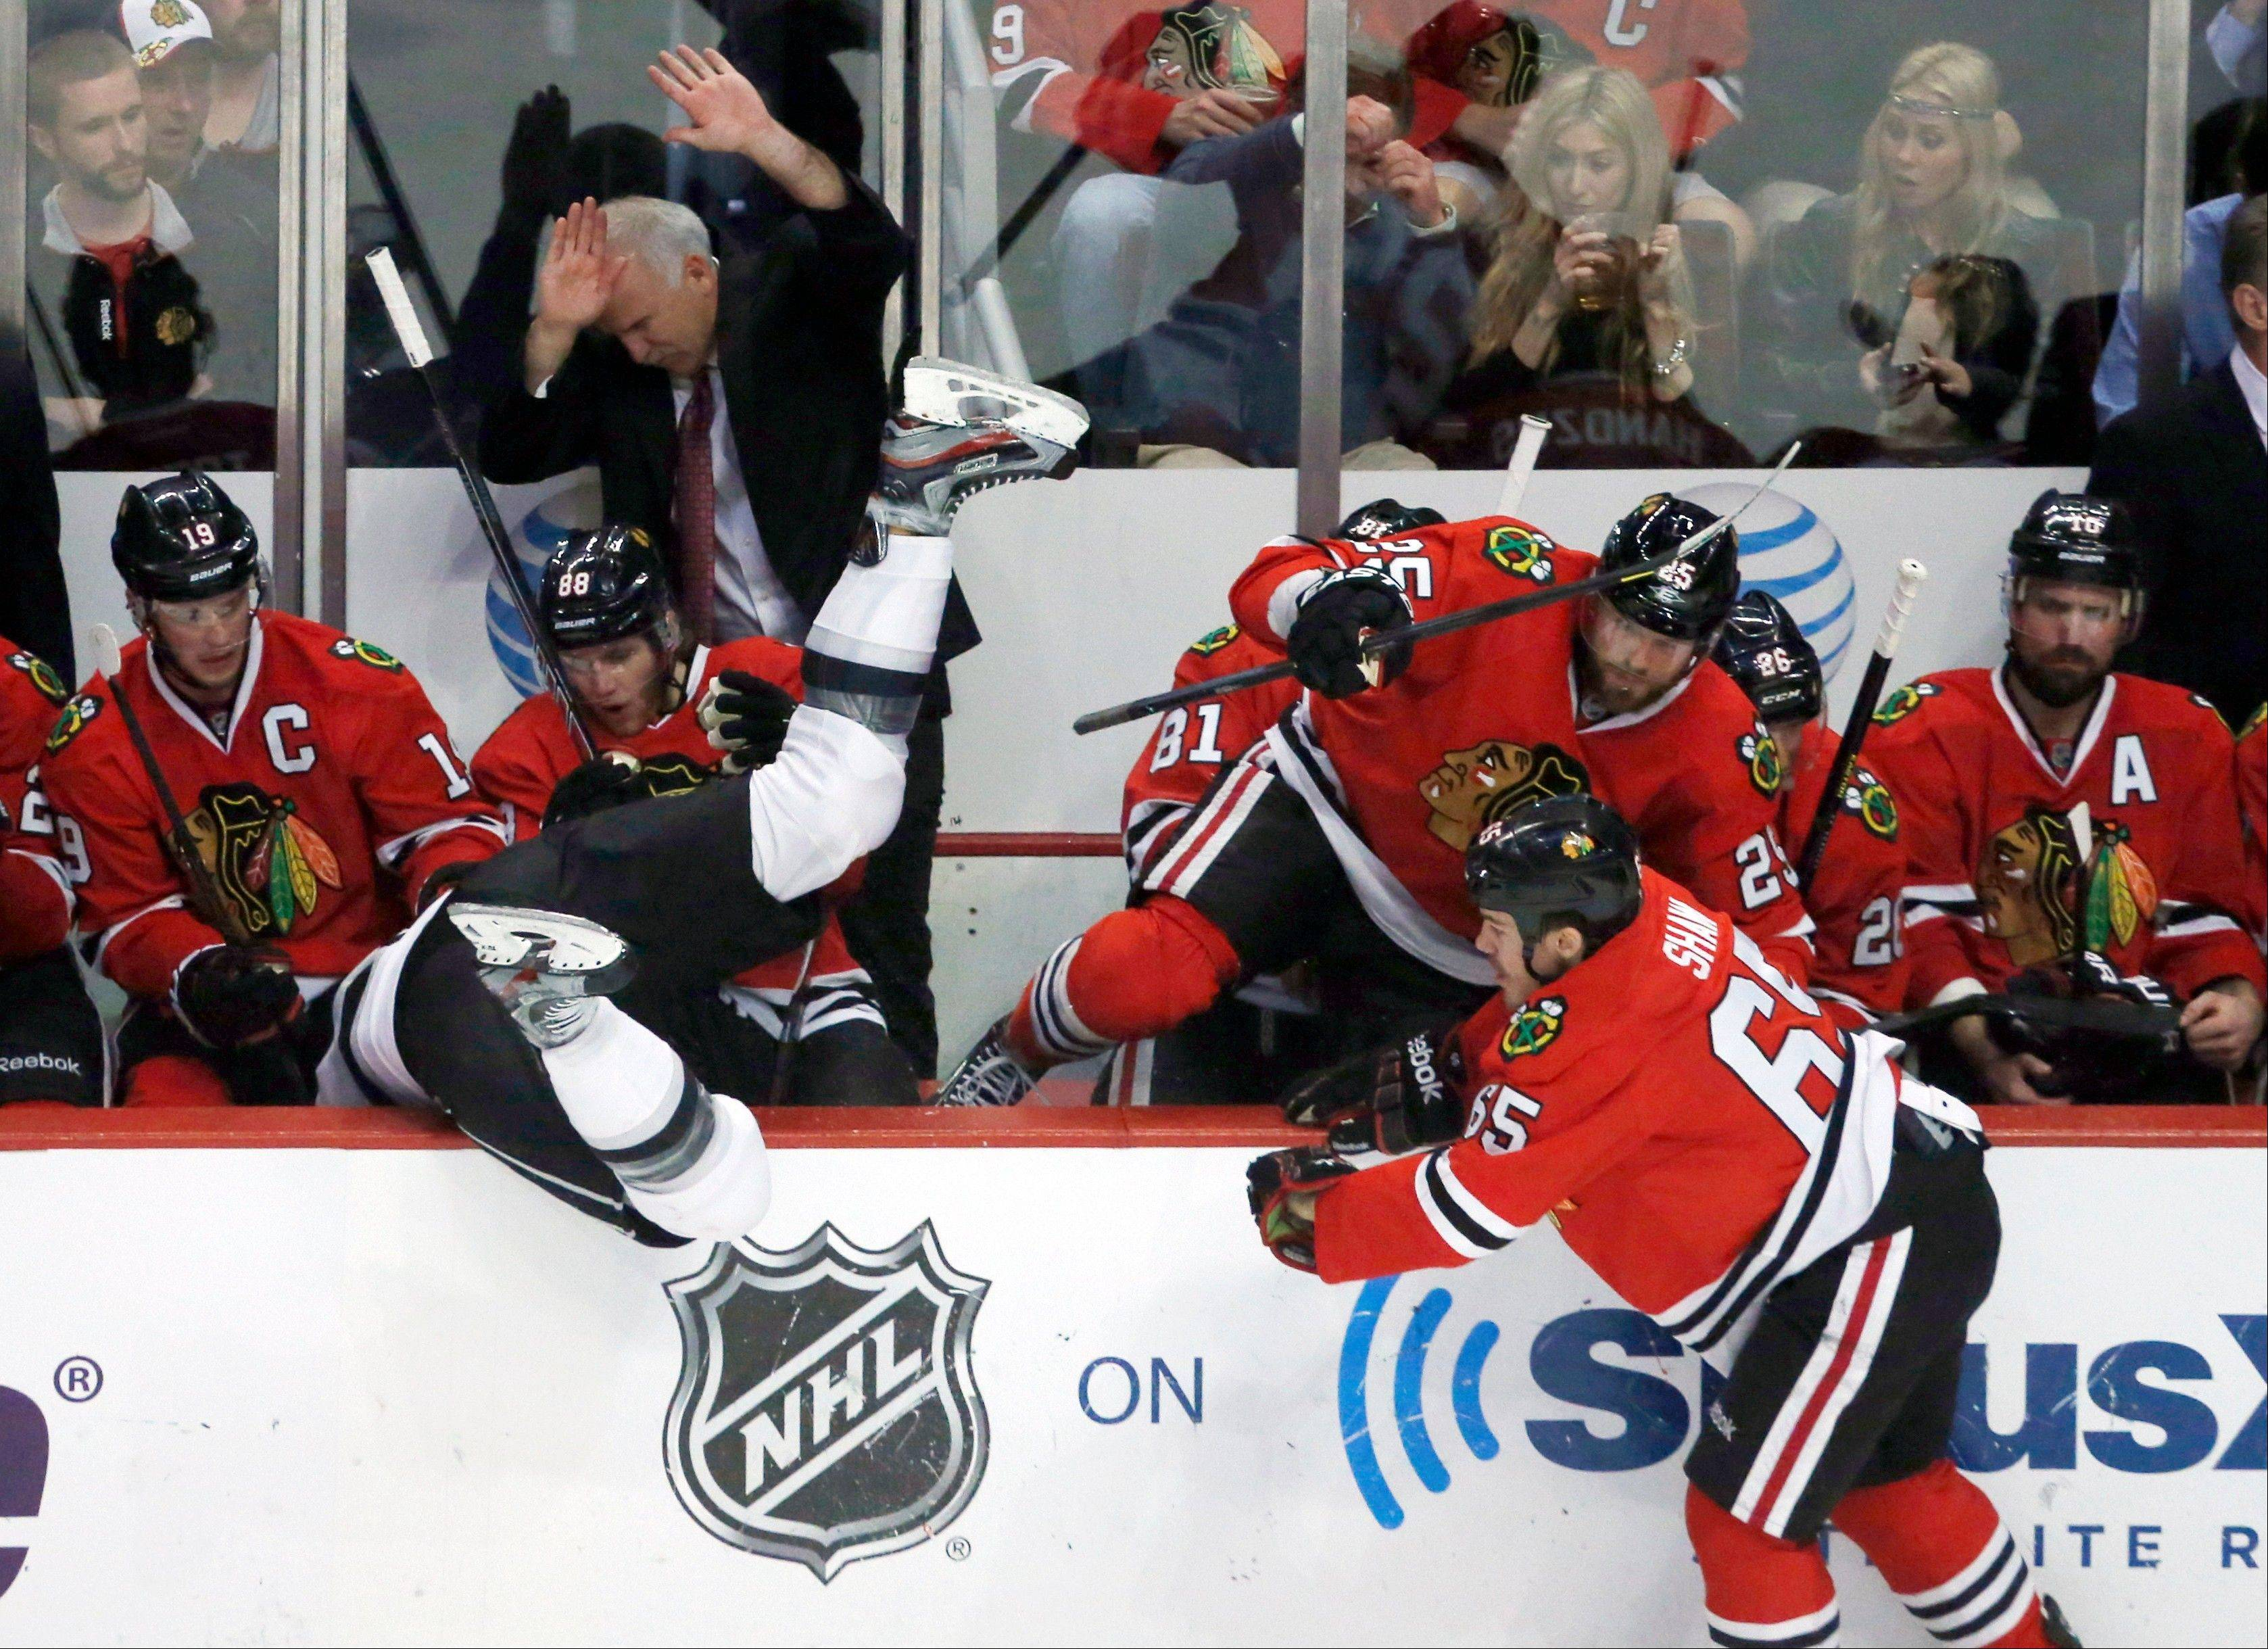 Patrick Shaw sends Kings defenseman Jake Muzzin into the Blackhawks bench during Game 5 of the Western Conference finals.